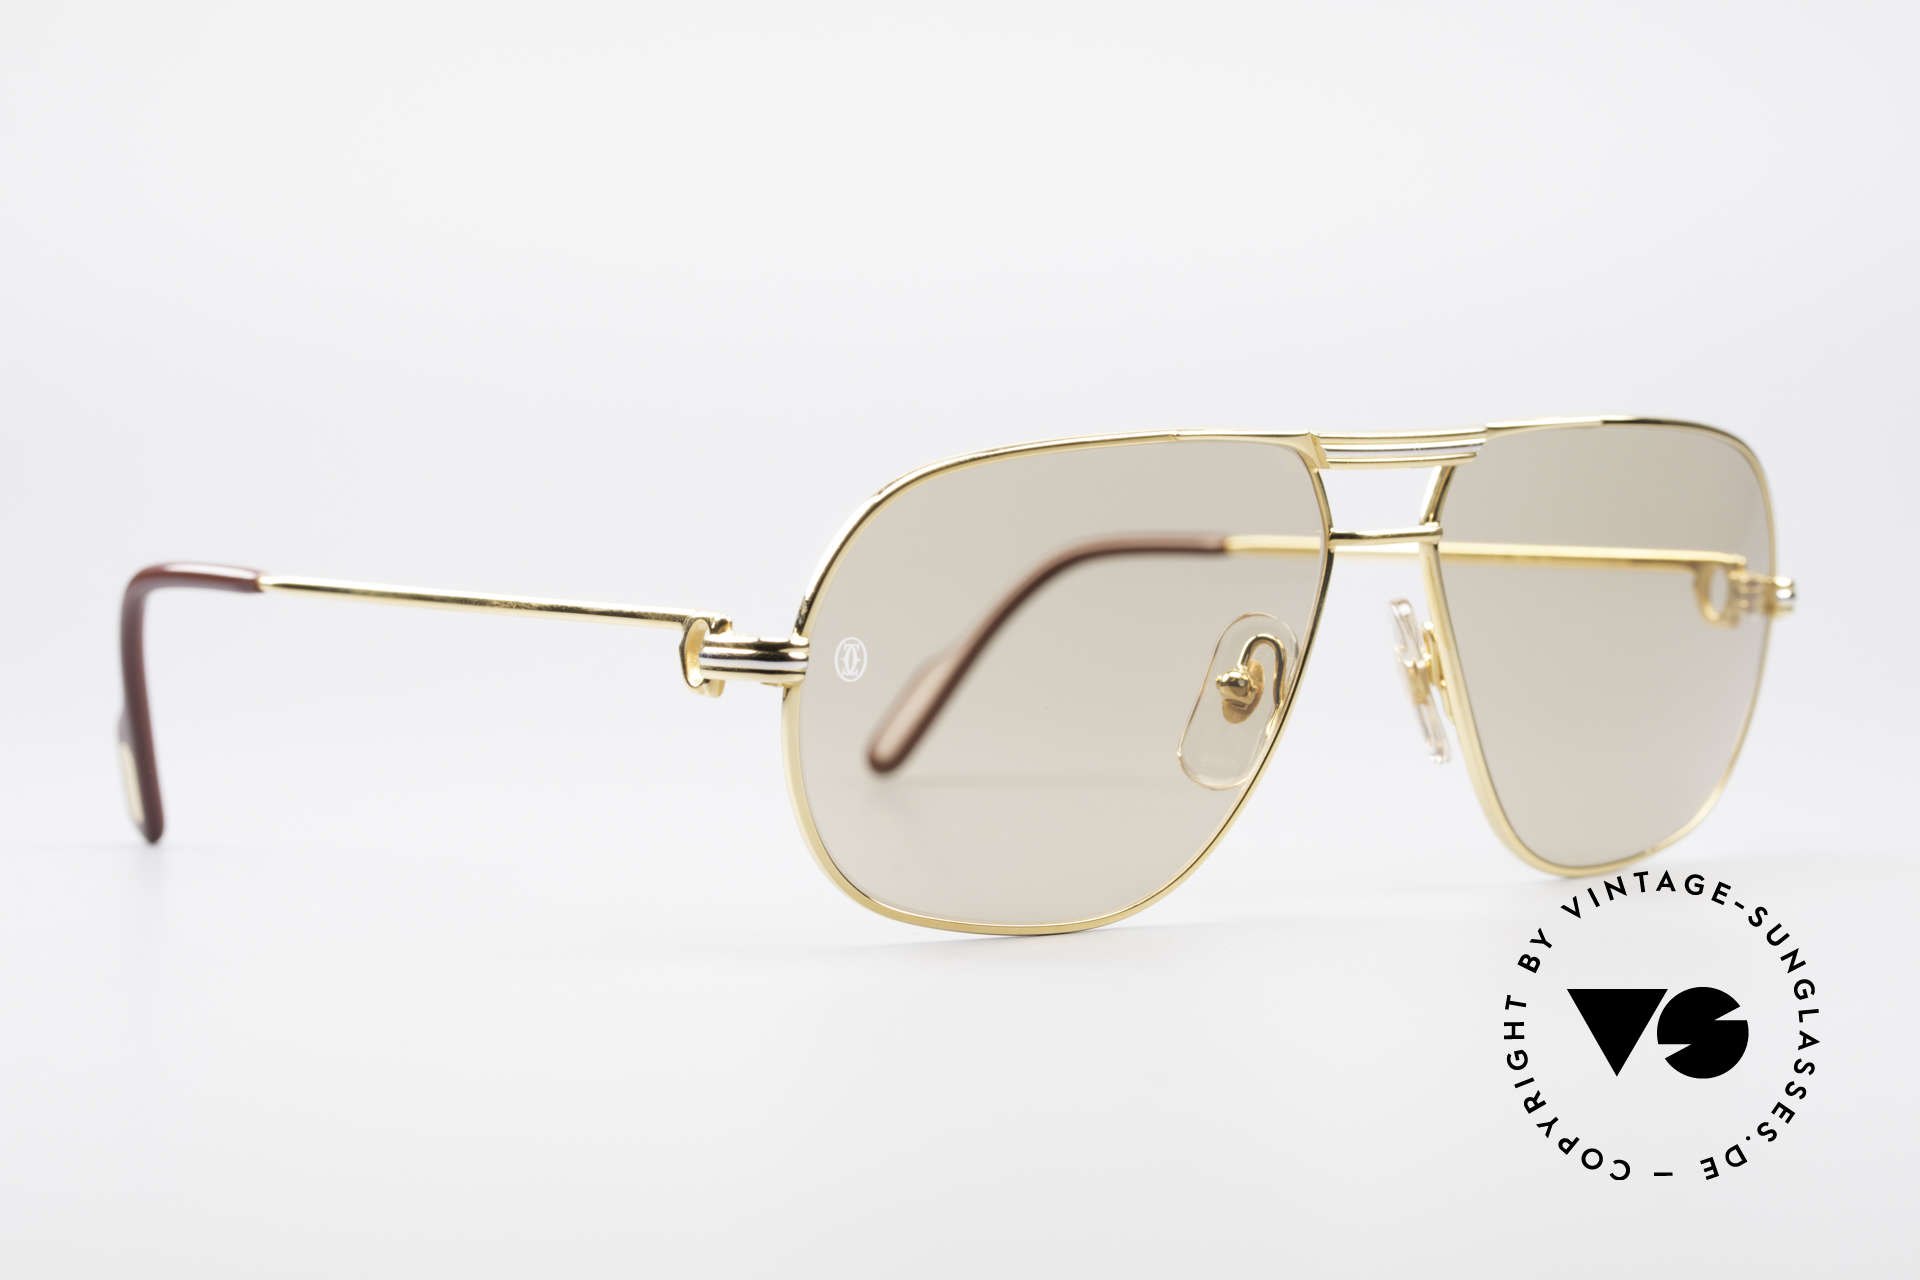 Cartier Tank - M Luxury Designer Sunglasses, Tank: model of the old 'rimmed series' by CARTIER Paris, Made for Men